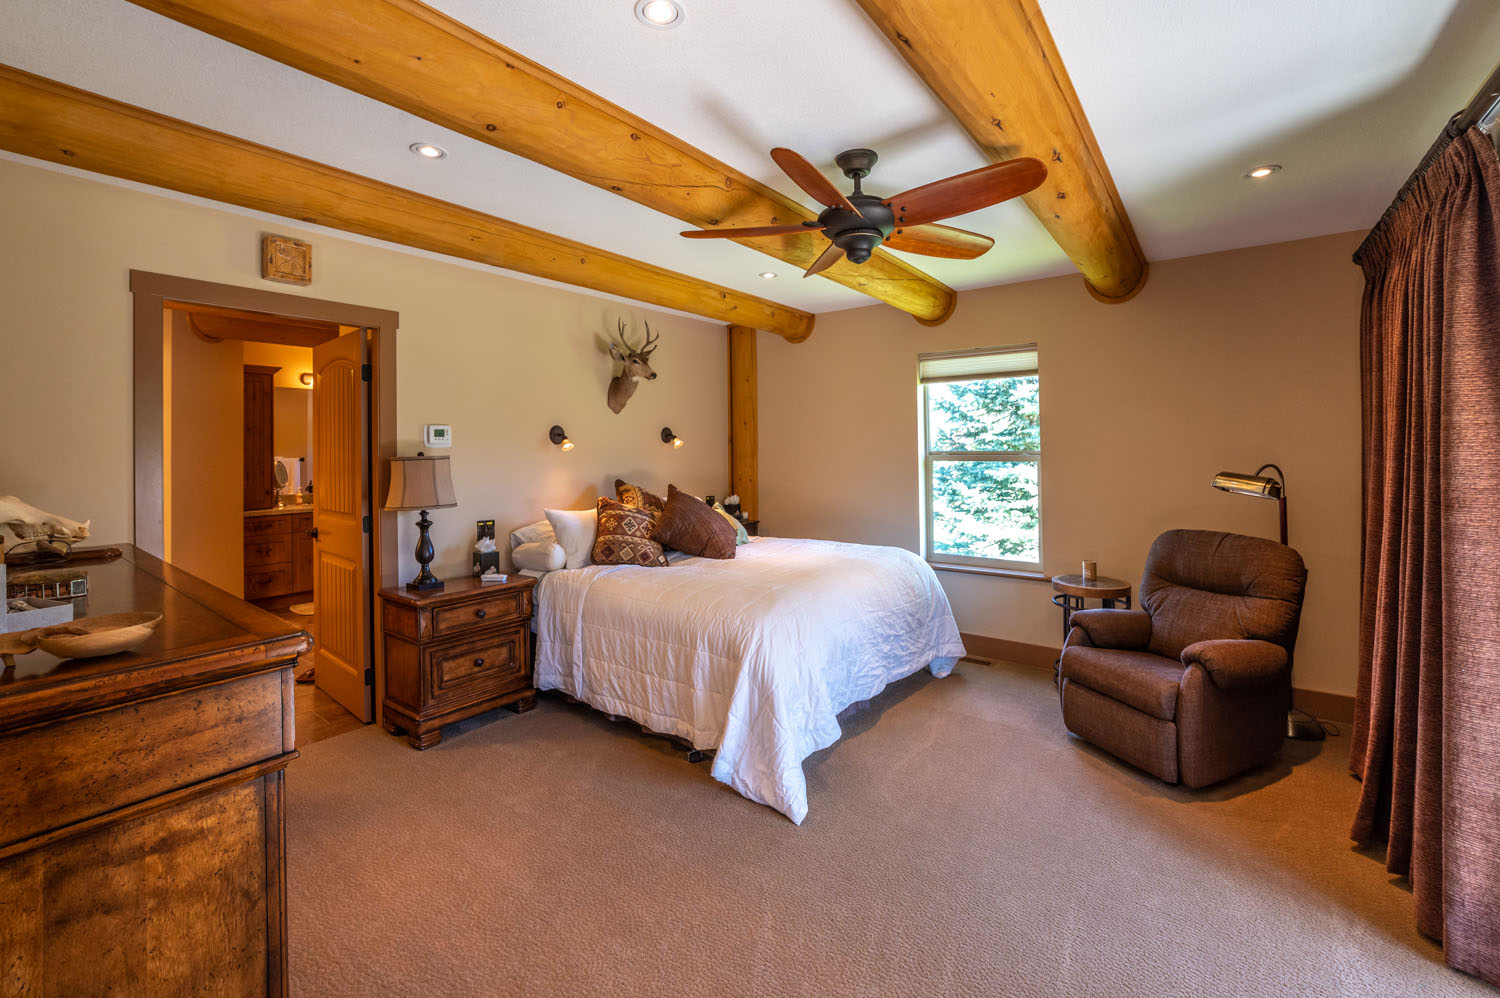 Willow springs ranch 31